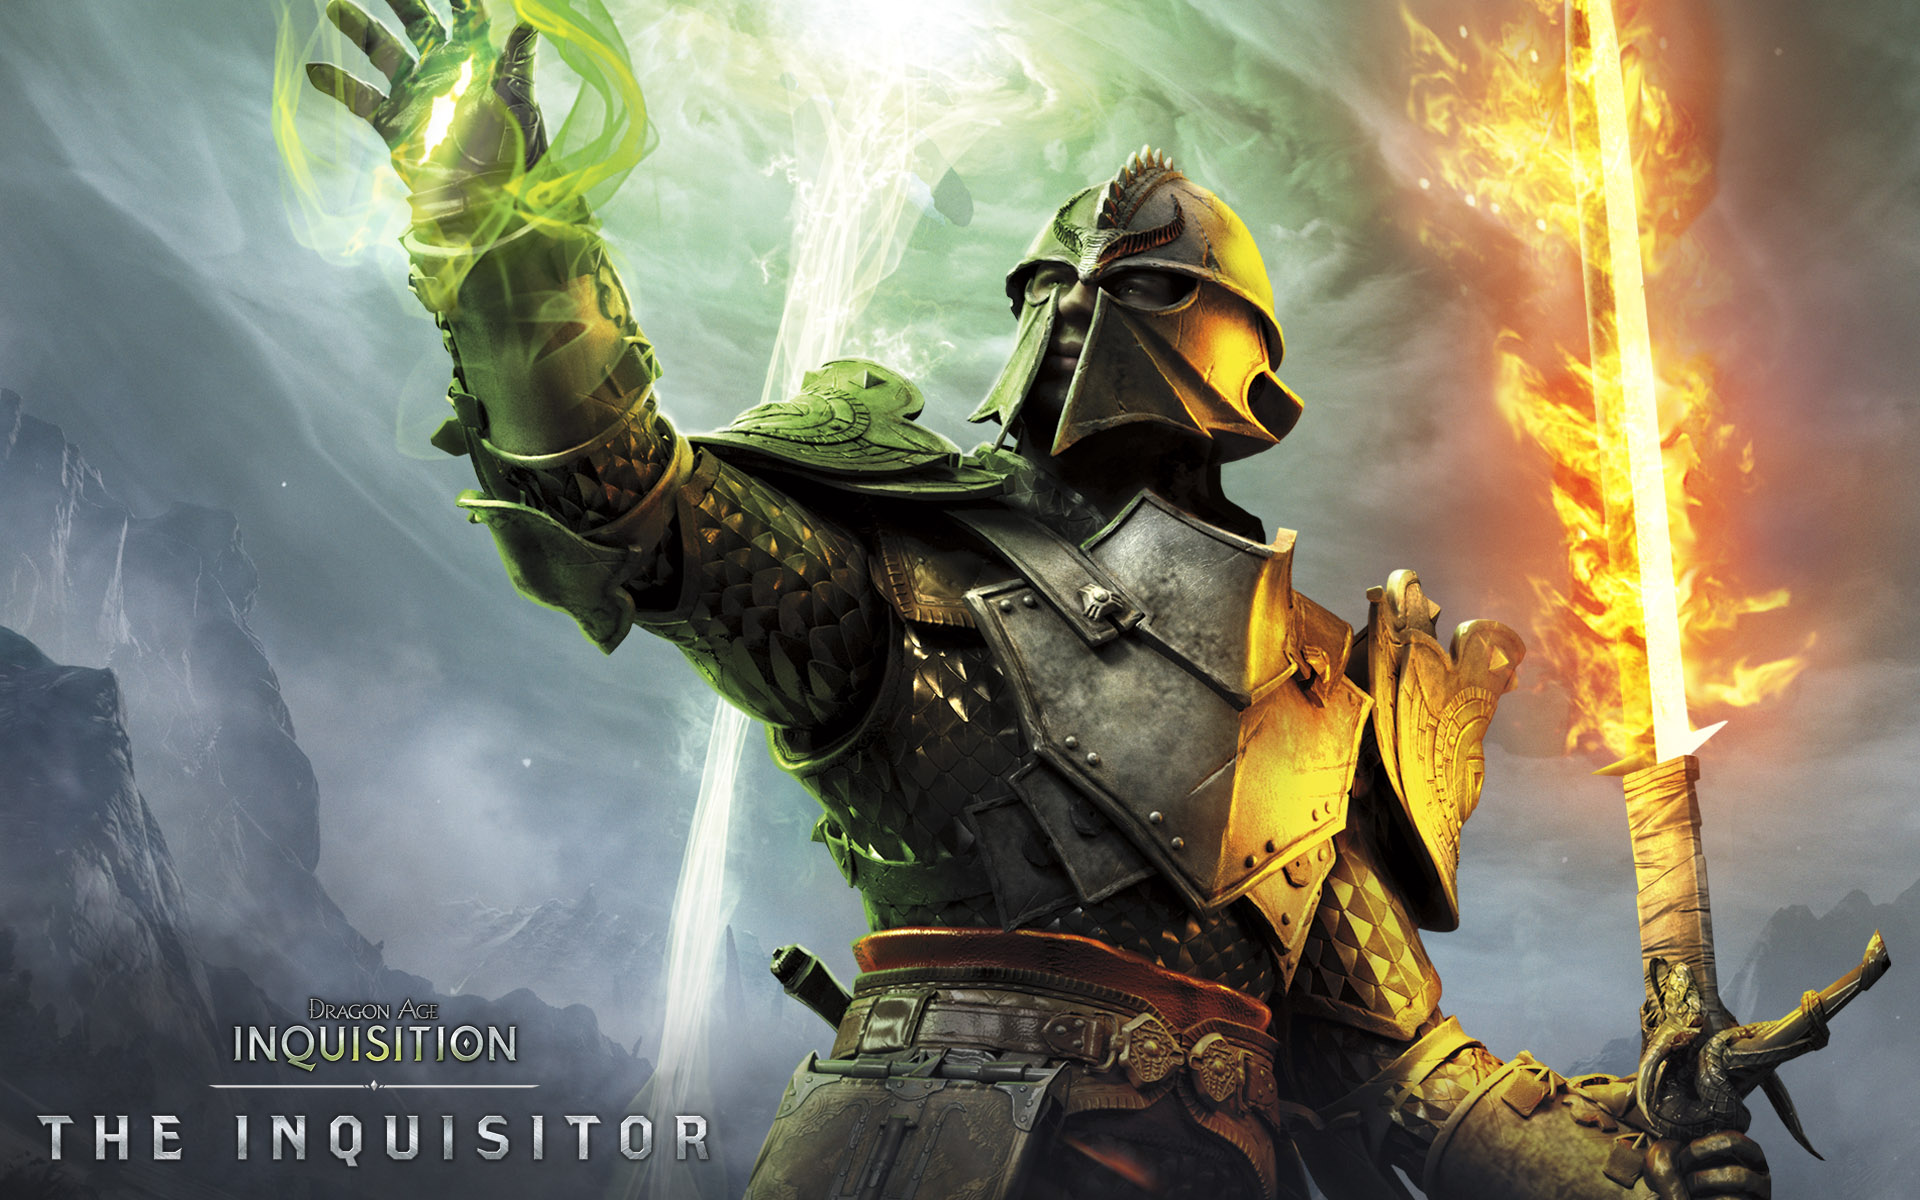 Dragon age inquisition hd wallpaper wallpapersafari - Dragon age inquisition wallpaper 4k ...